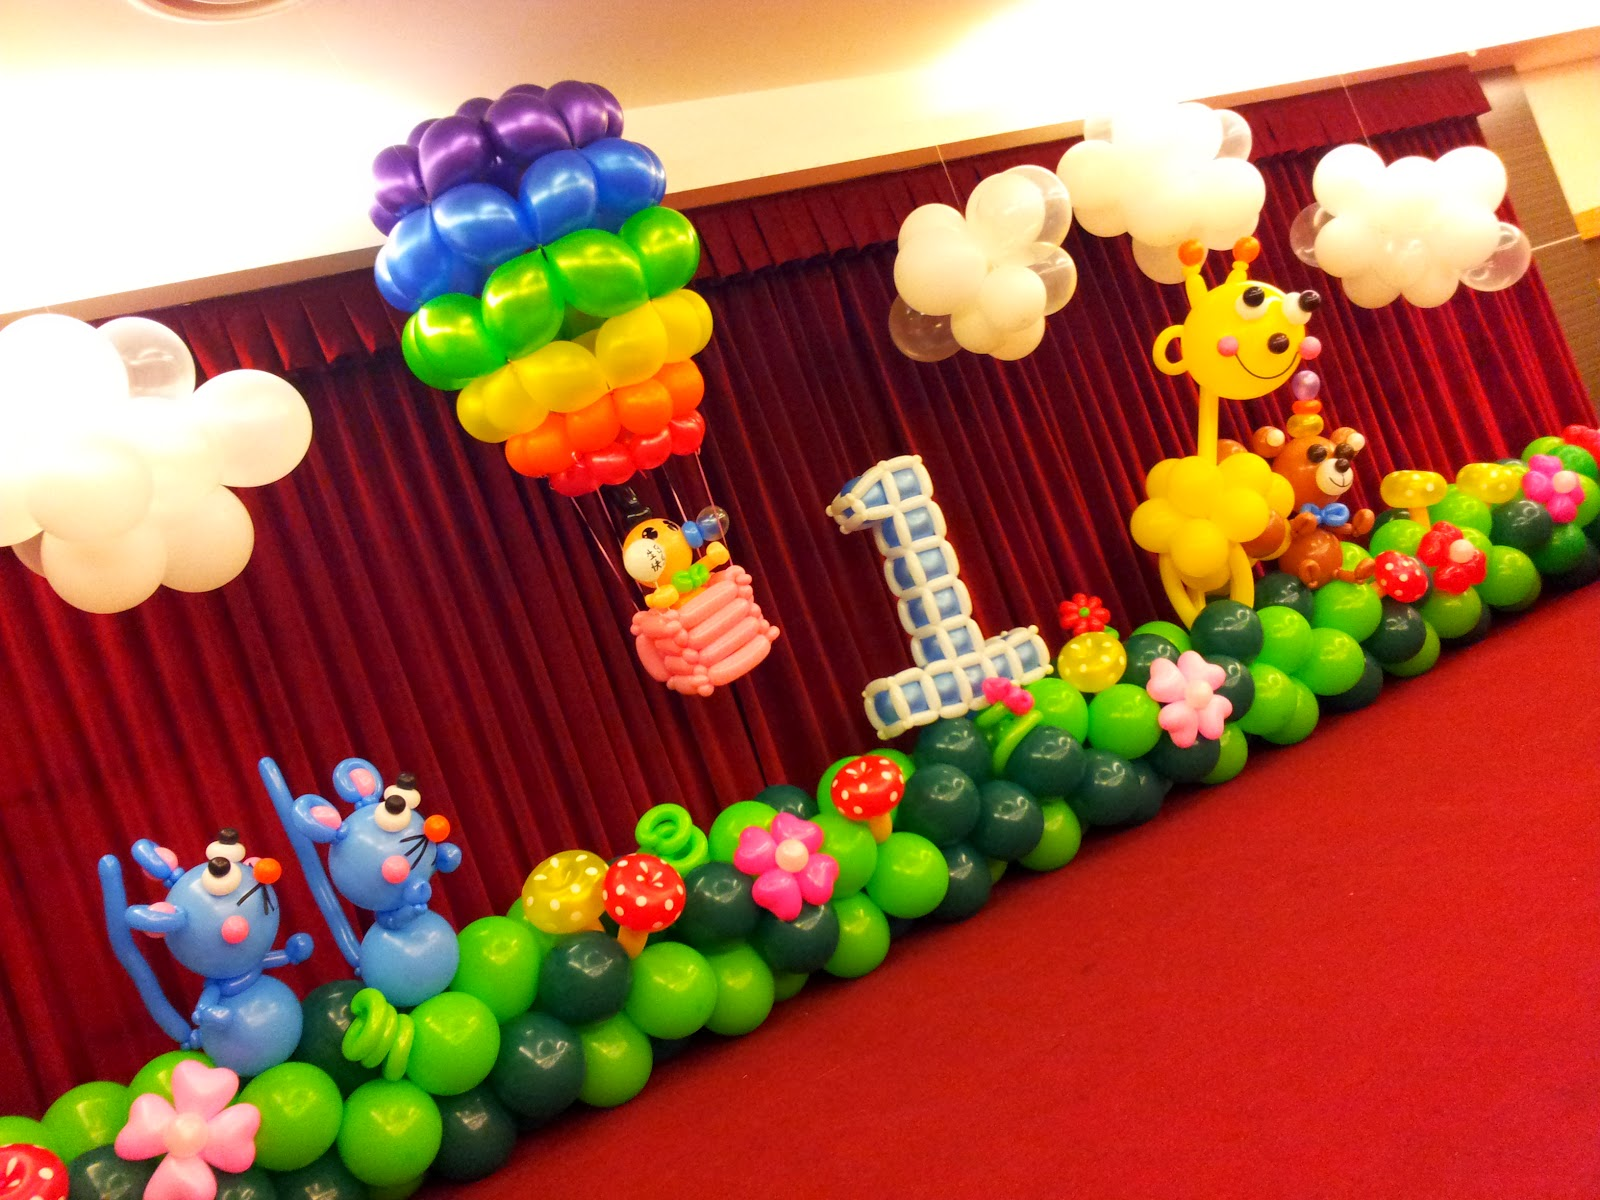 Rb planners event planners and decorators party room for Balloon decoration ideas for birthday party